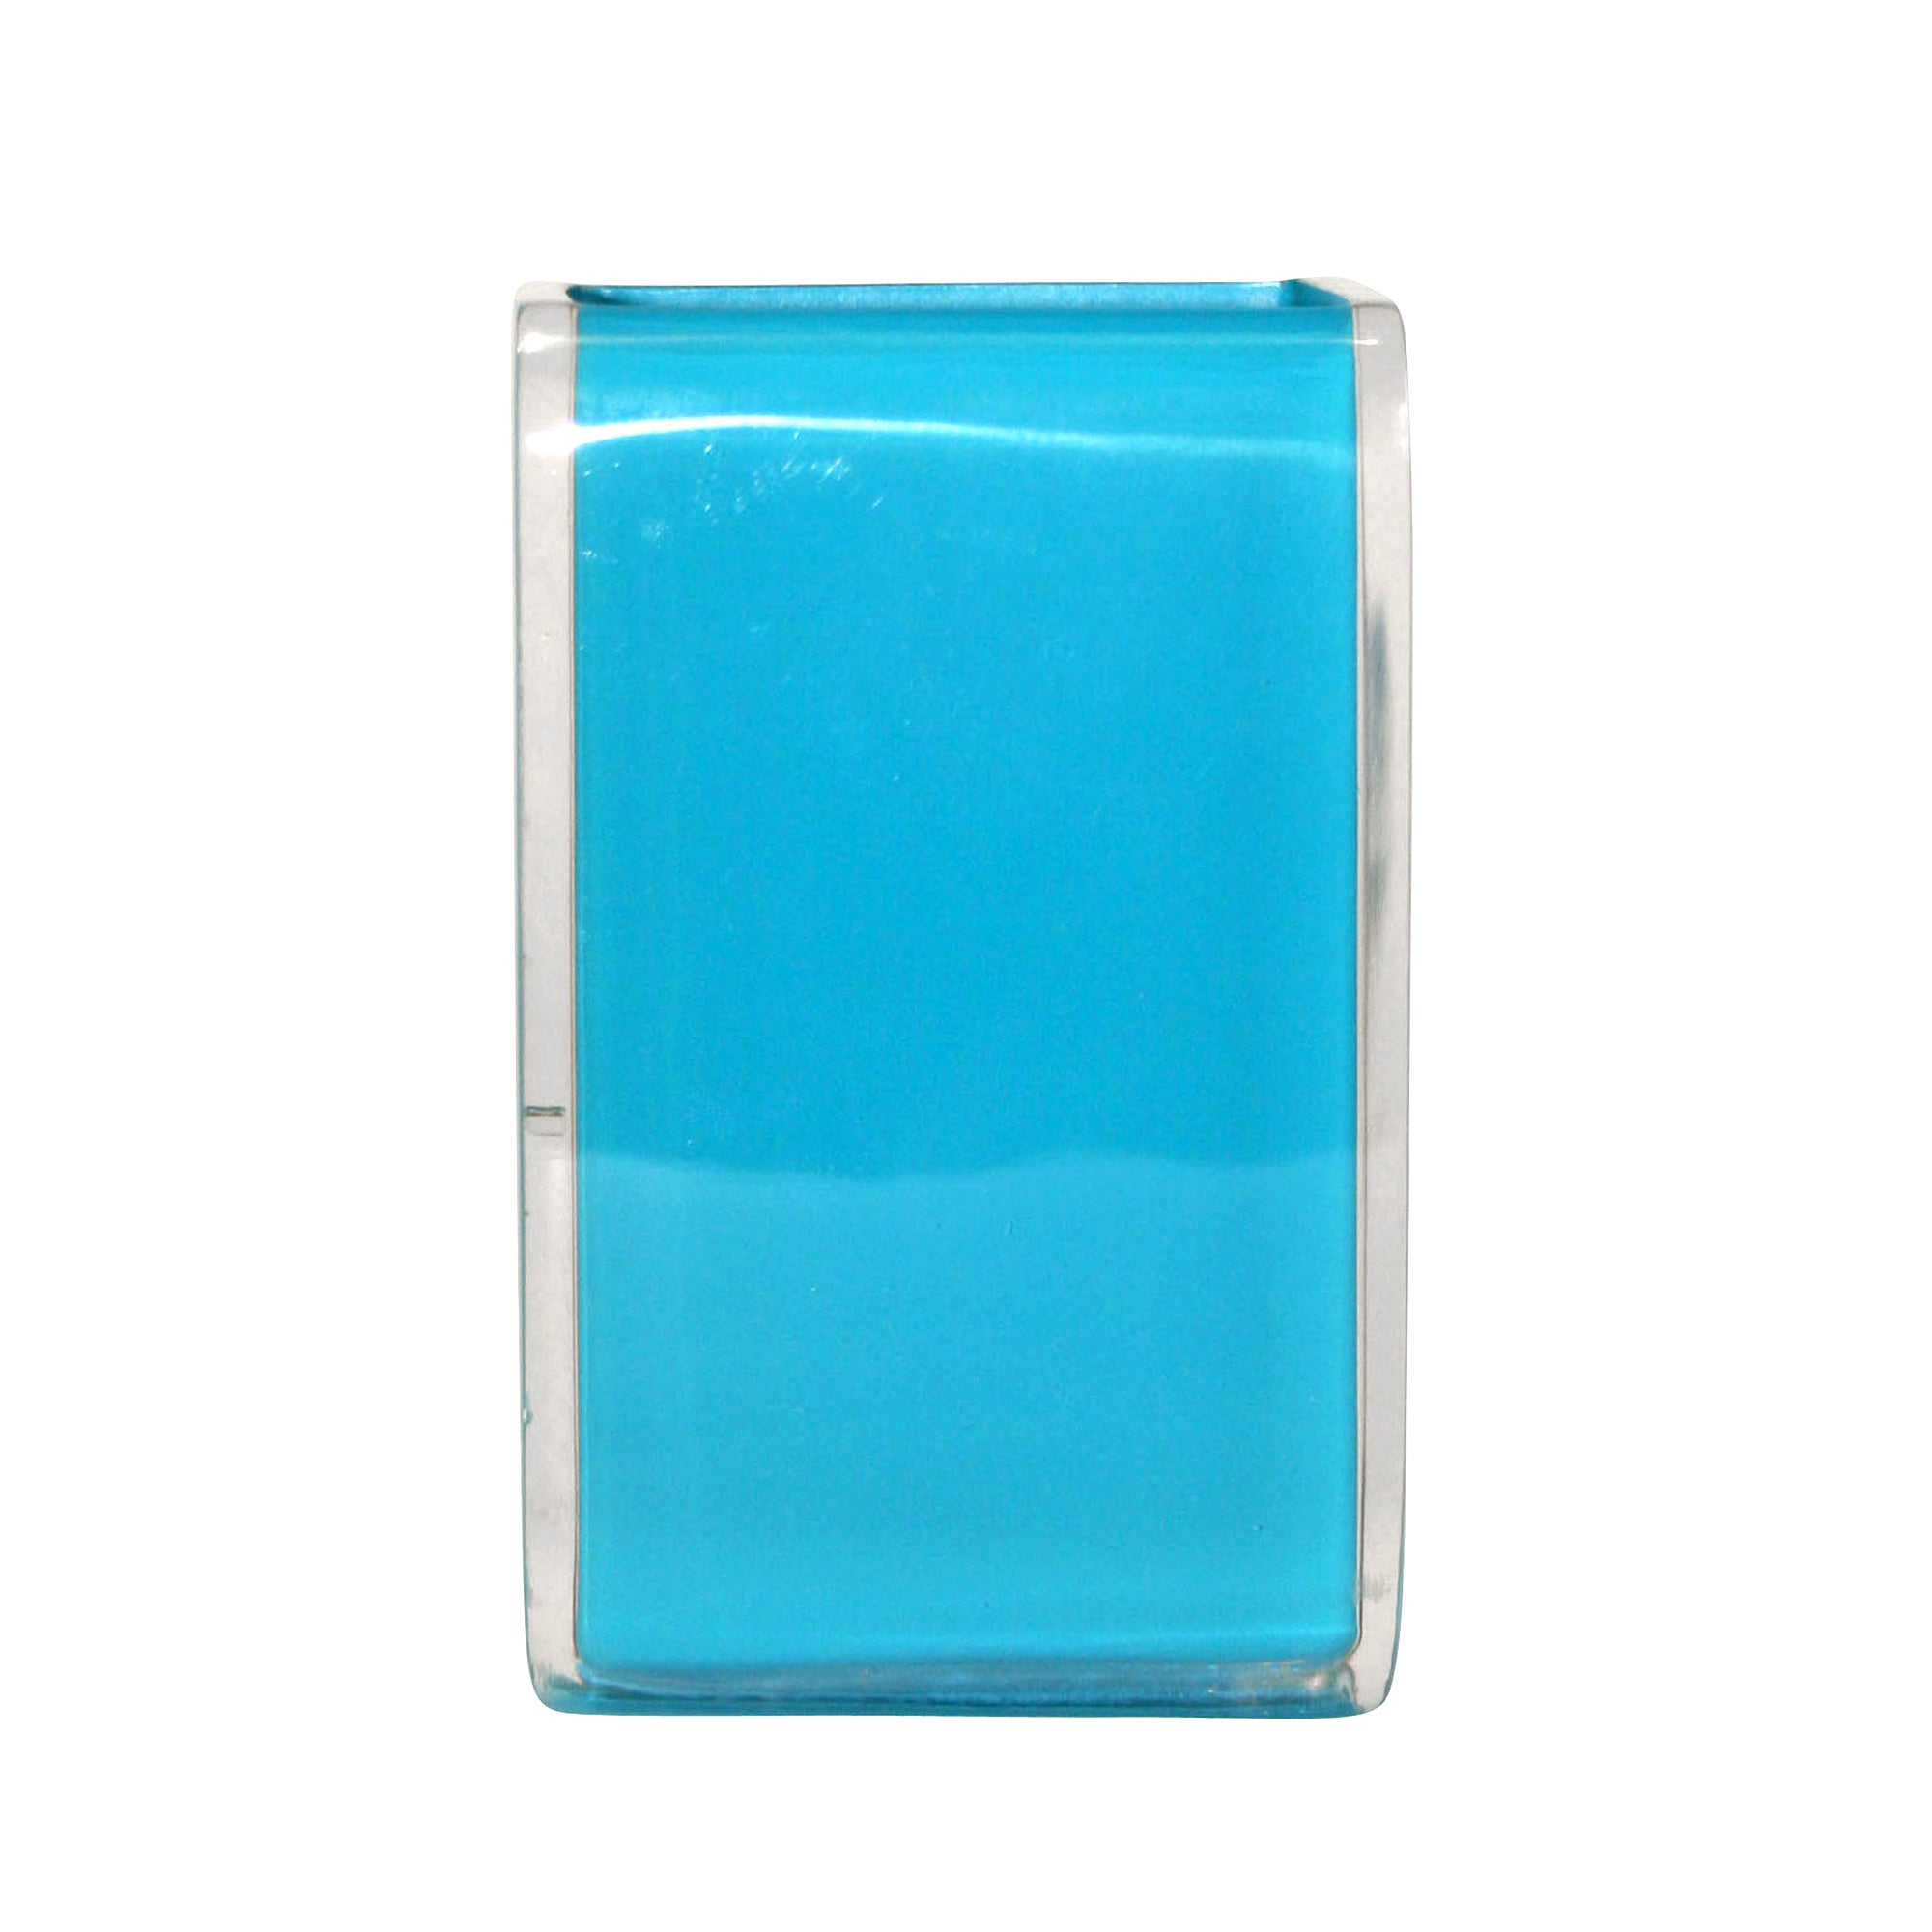 Teal Brights Collection Acrylic Tumbler